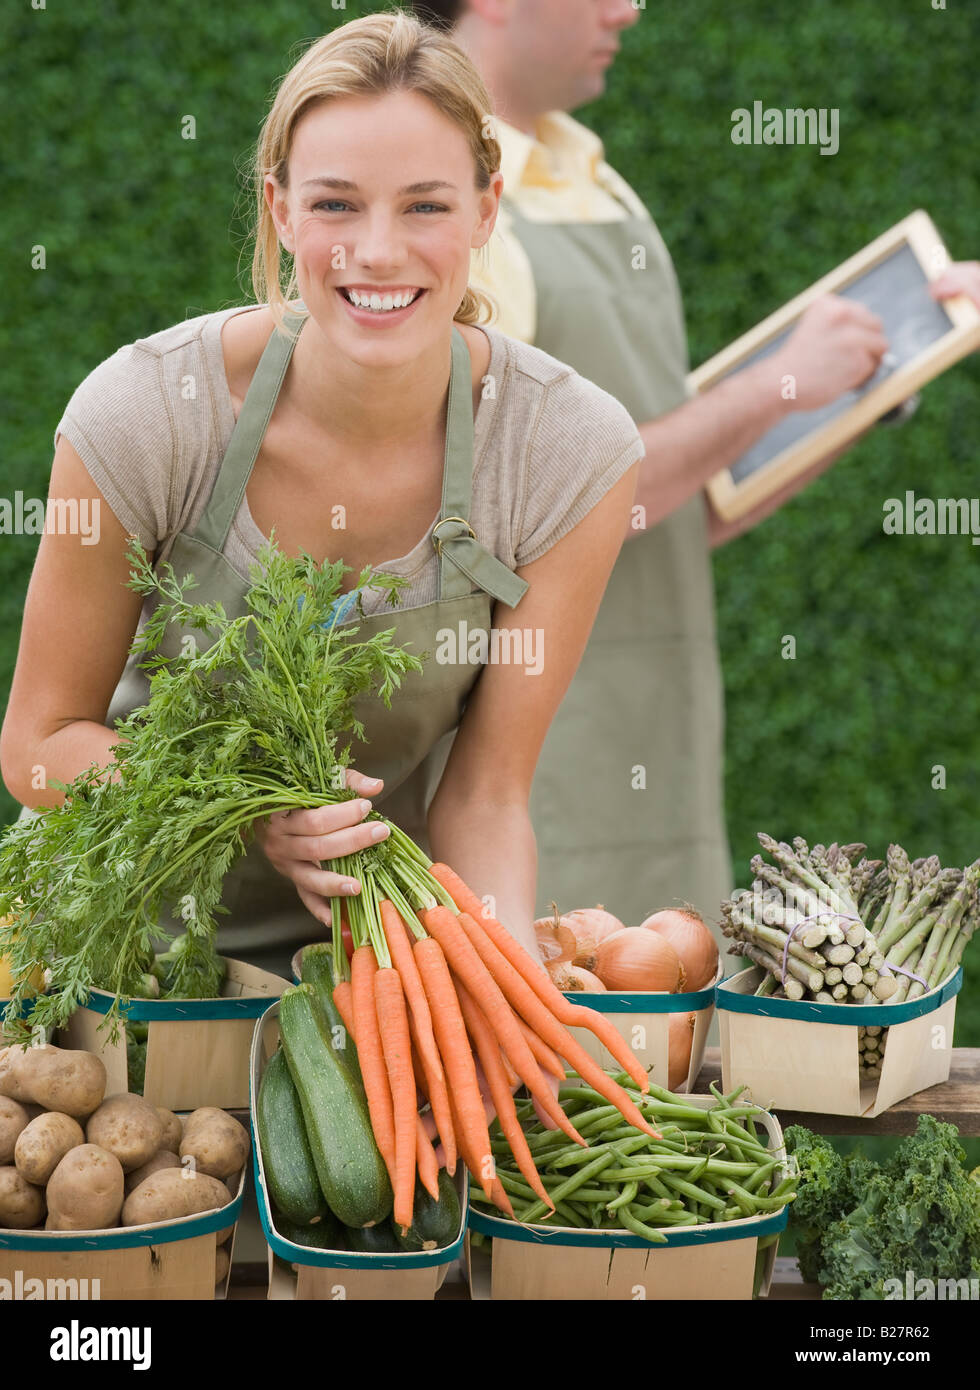 Woman next to baskets of vegetables - Stock Image